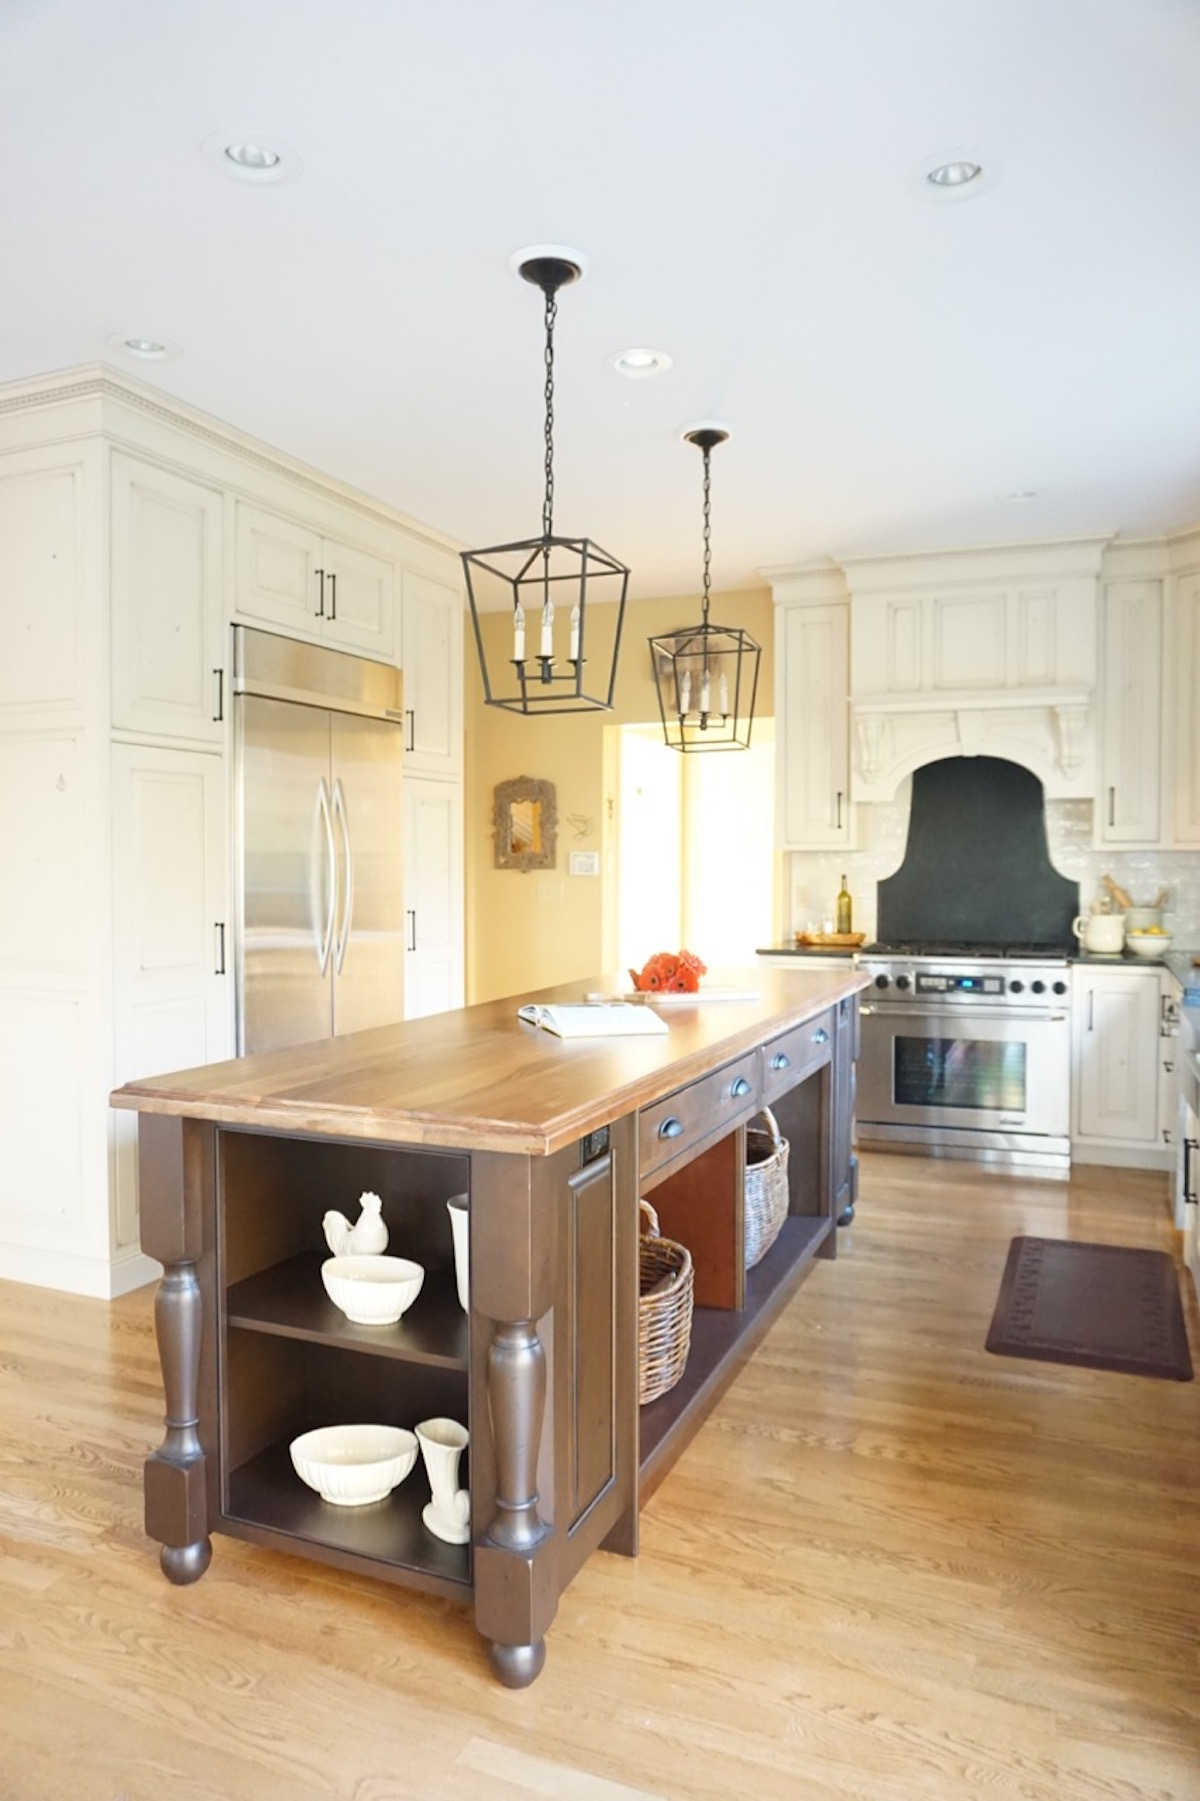 Refined Rustic Kitchen - Affordable Kitchens and Baths